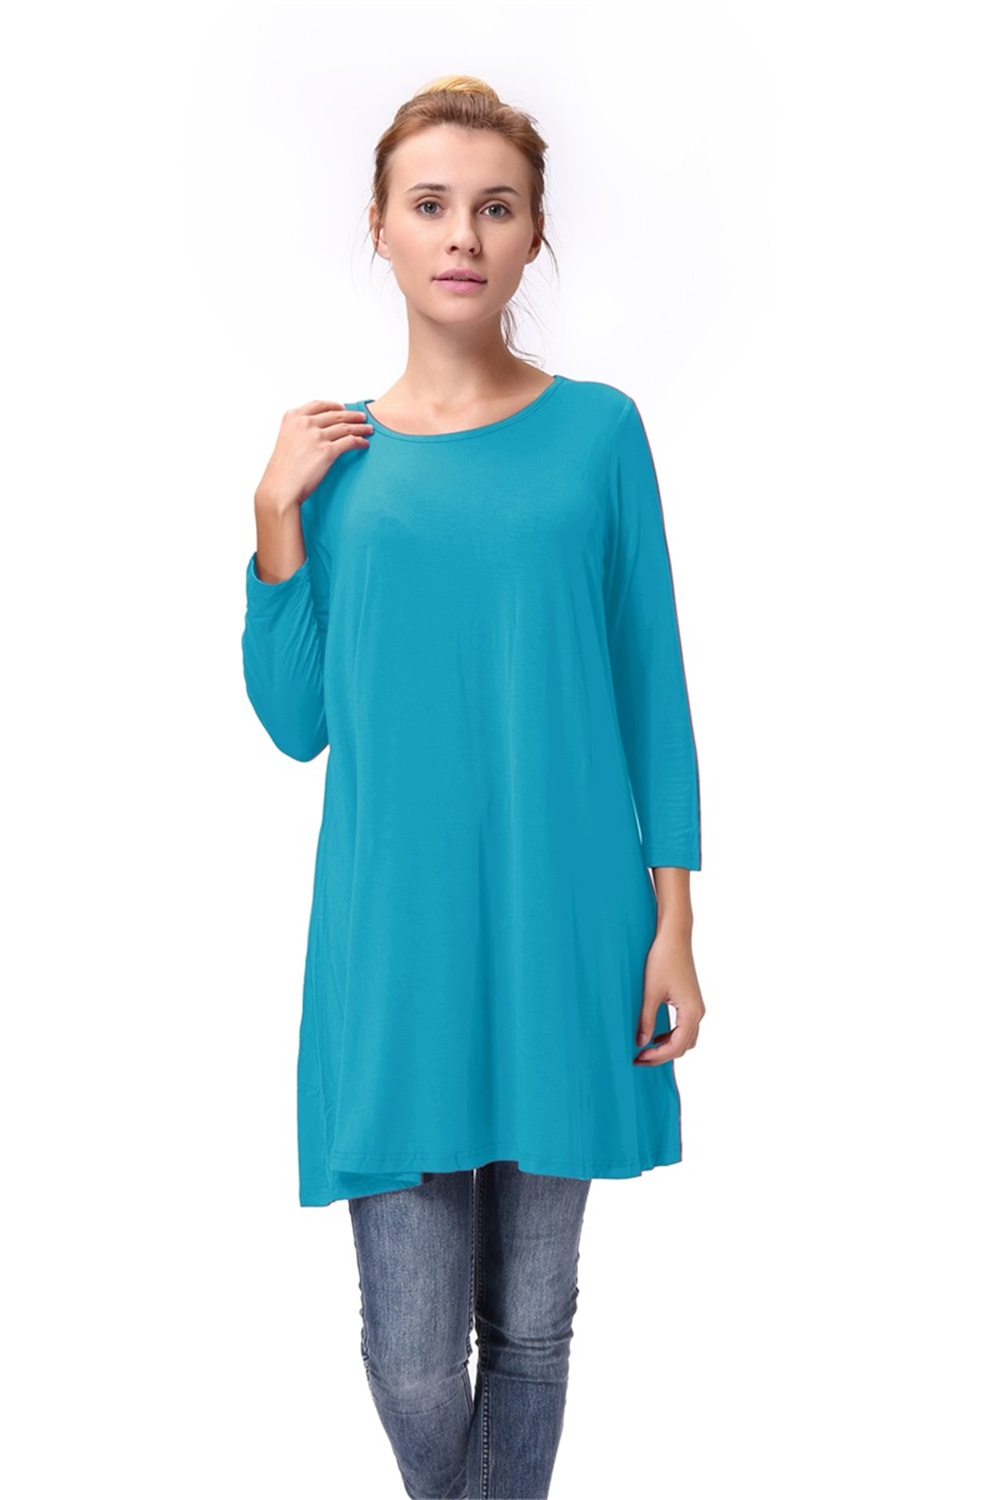 Women-Casual-Round-Neck-3-4-Long-Sleeve-Trapeze-Tunic-Top-Lady-Loose-Fit-Dress thumbnail 31